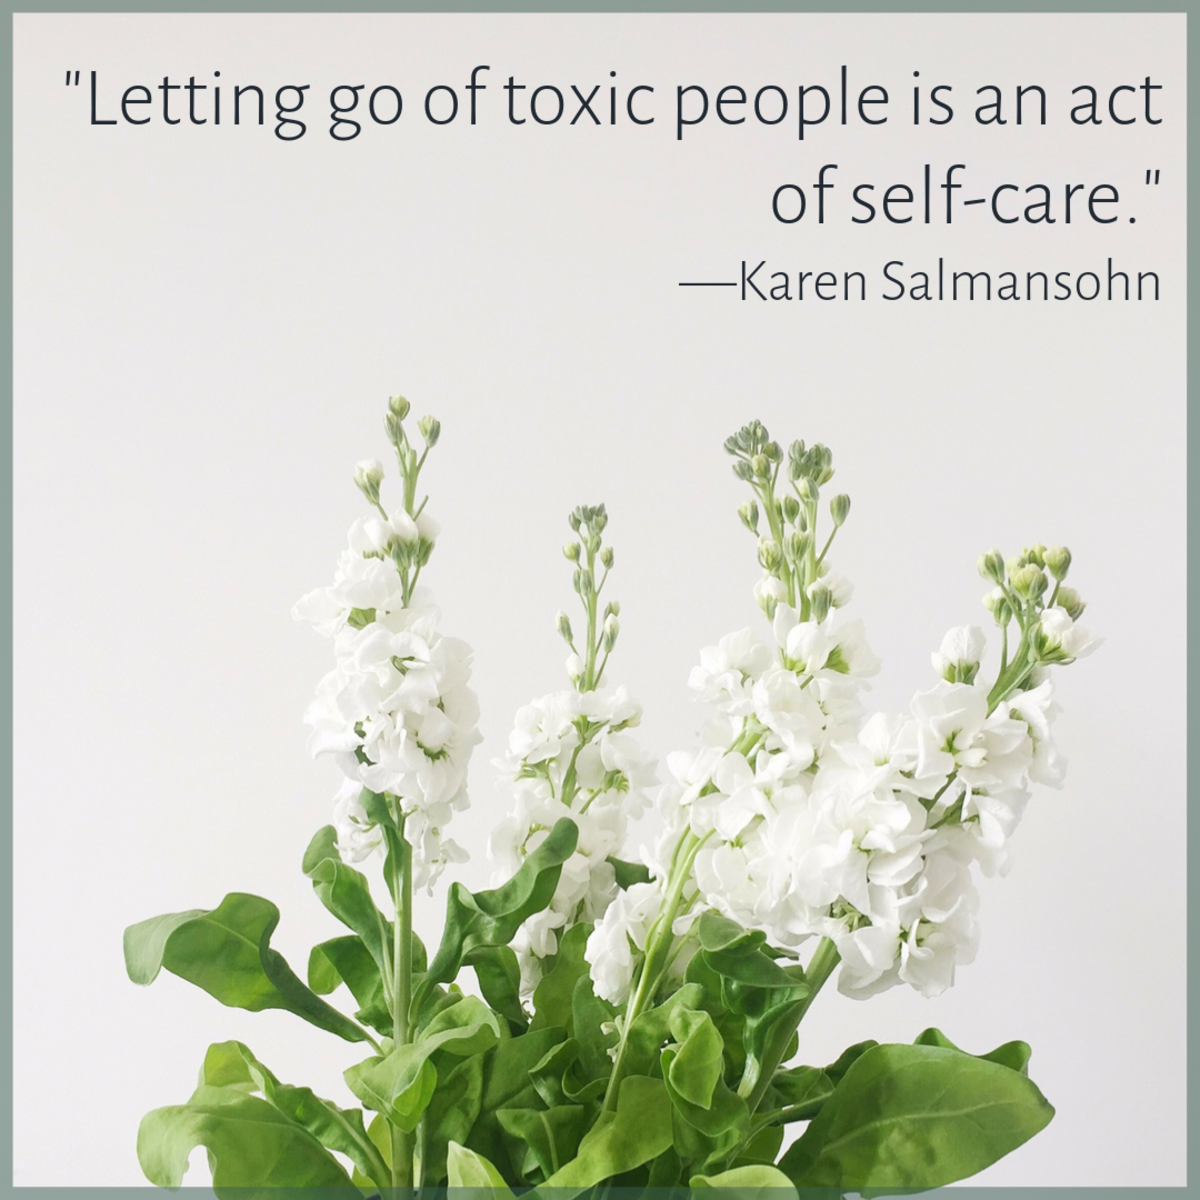 Saying goodbye to the toxic people in your life—however hard it may be—is the biggest kindness you can do yourself.